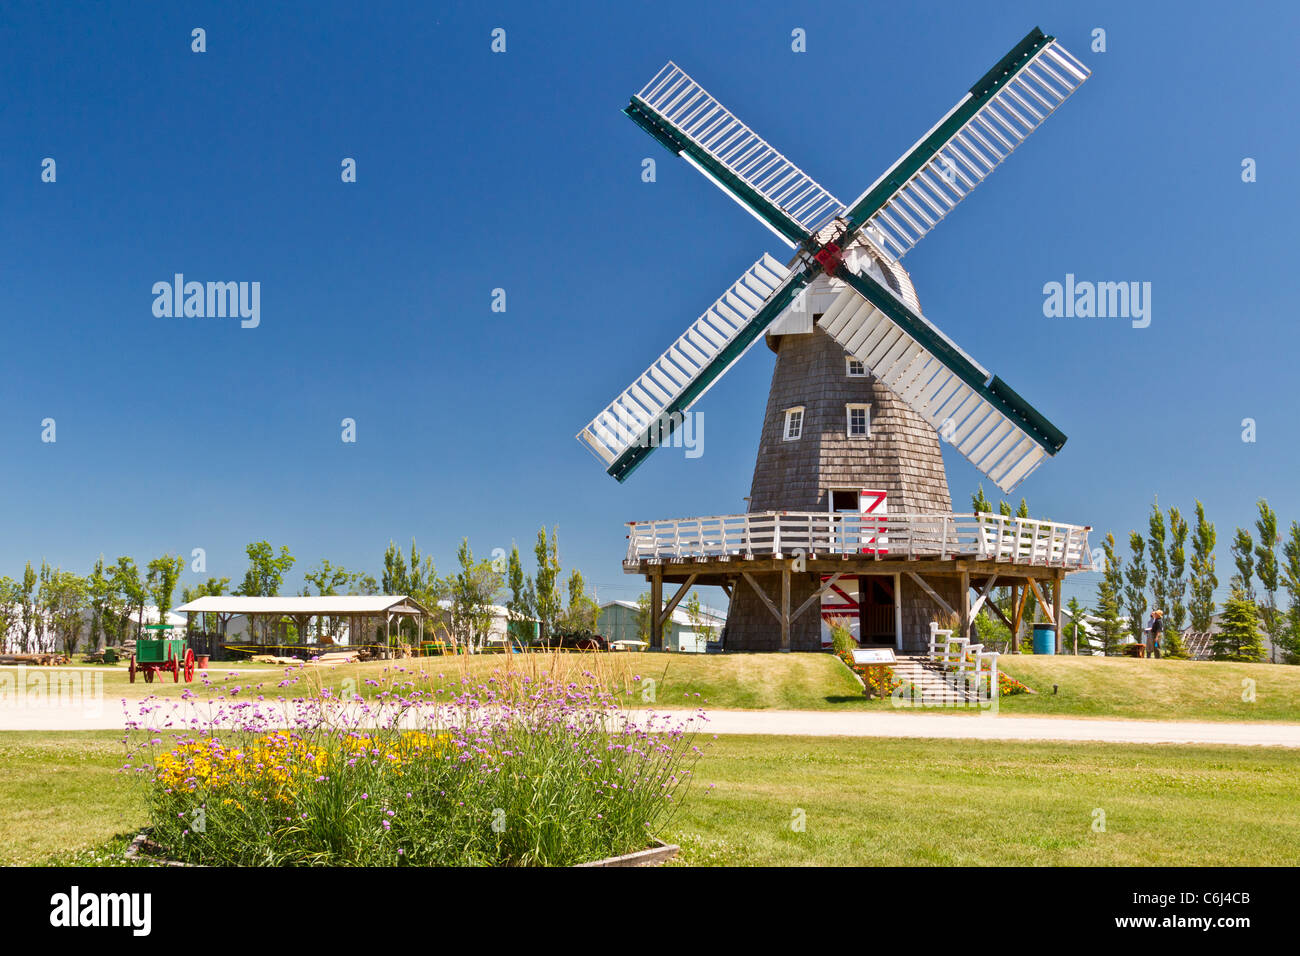 A Windmill Used For Grinding Grain Into Flour At The Mennonite Stock Photo Royalty Free Image